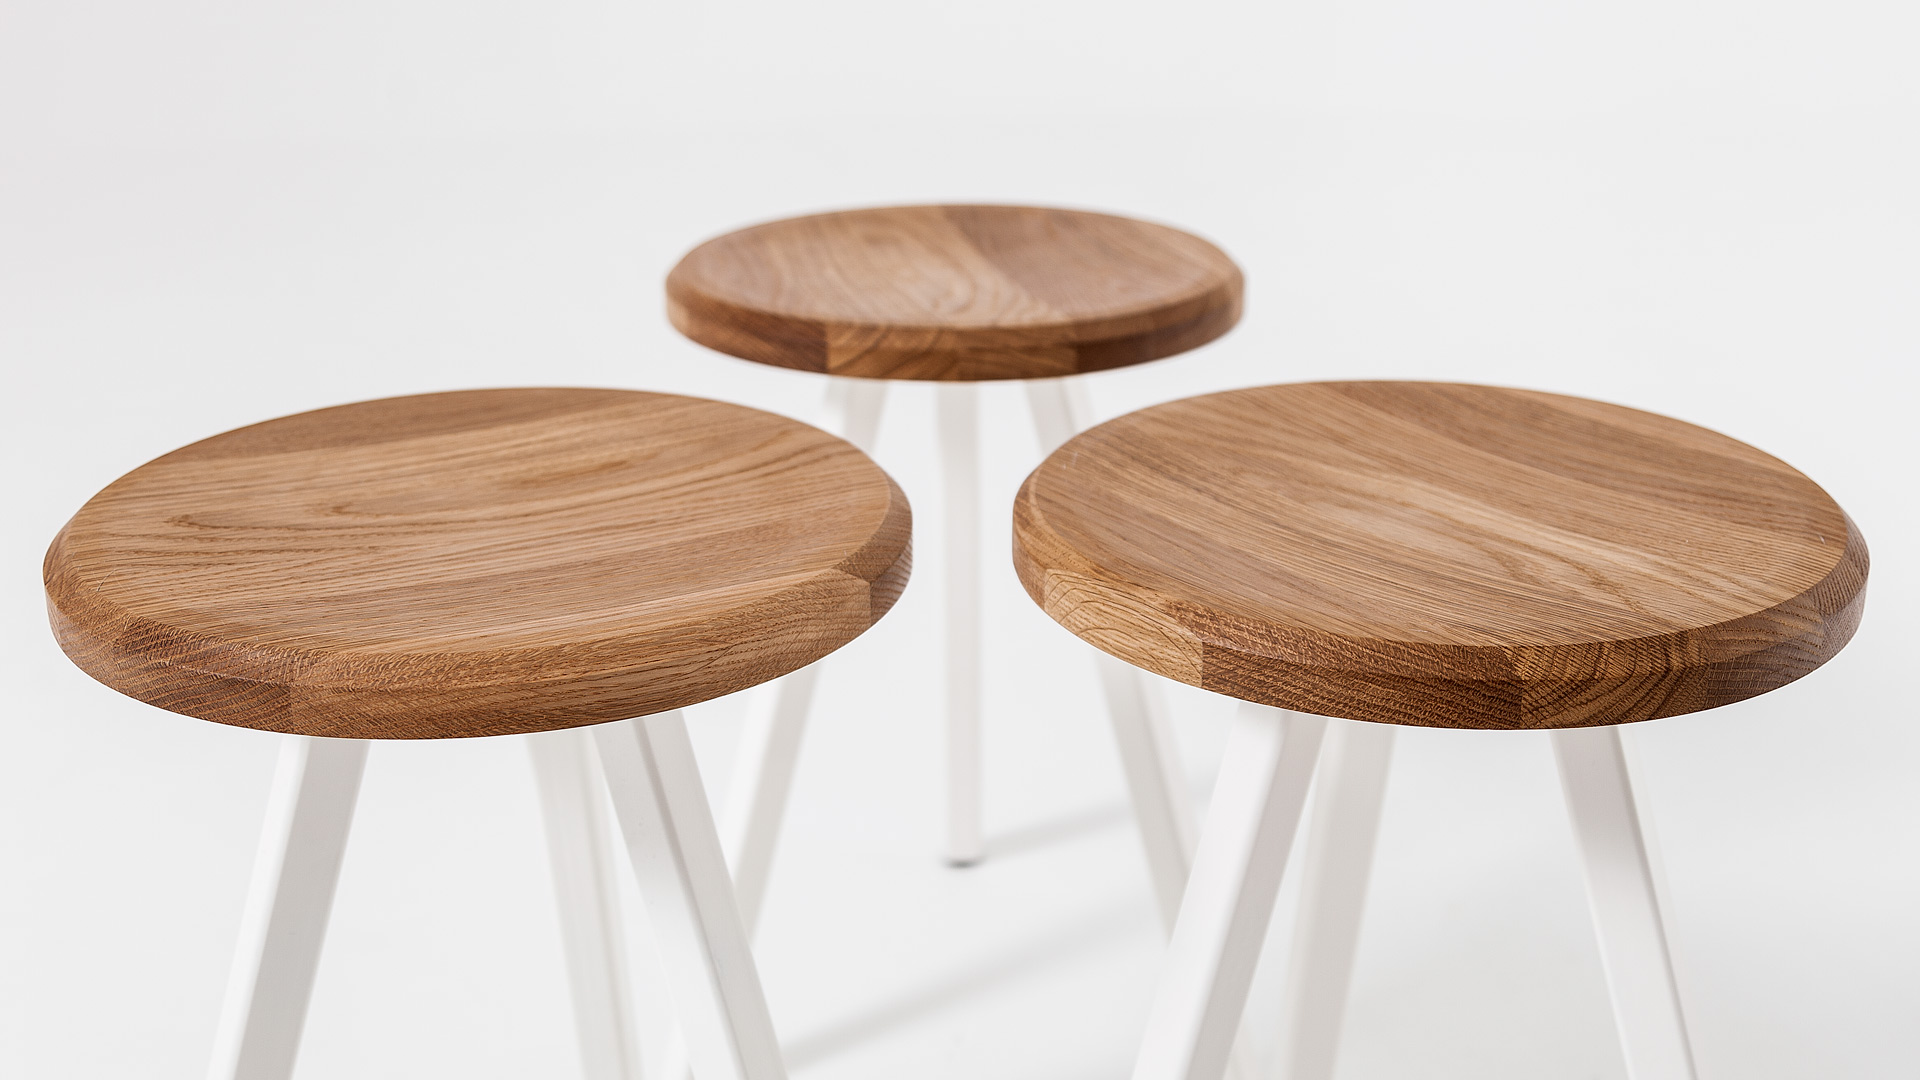 Small Stools Stools Contemporary Stools Small Round